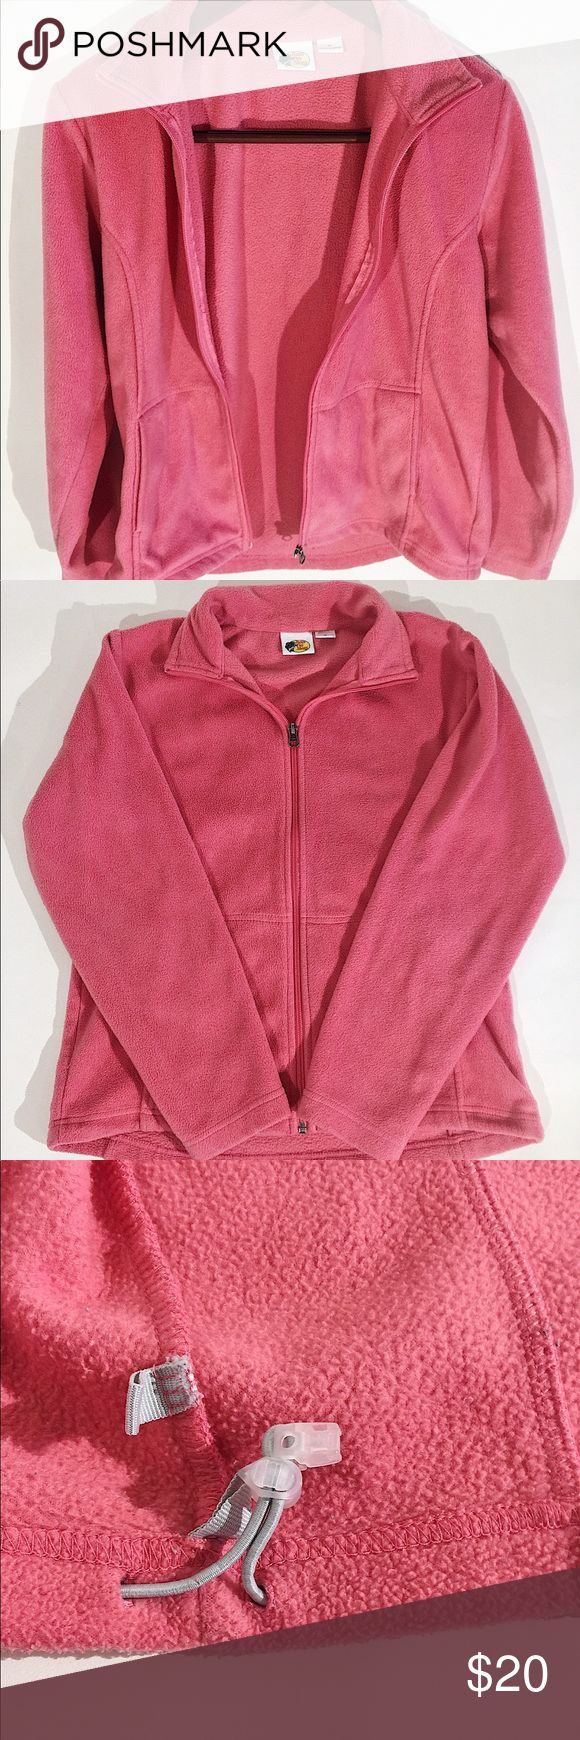 Women's Bass Pro Pink Fleece Jacket Size M This is a Coral/Pink full zip up fleece BassPro jacket.  It is very soft and comfortable.   It has a drawstring on the bottom of the jacket and two pockets in the front.  It is 100% polyester.  It measures approximately: 26 inches length, 20 inches wide, 23 1/2 inches sleeve. BassPro Jackets & Coats